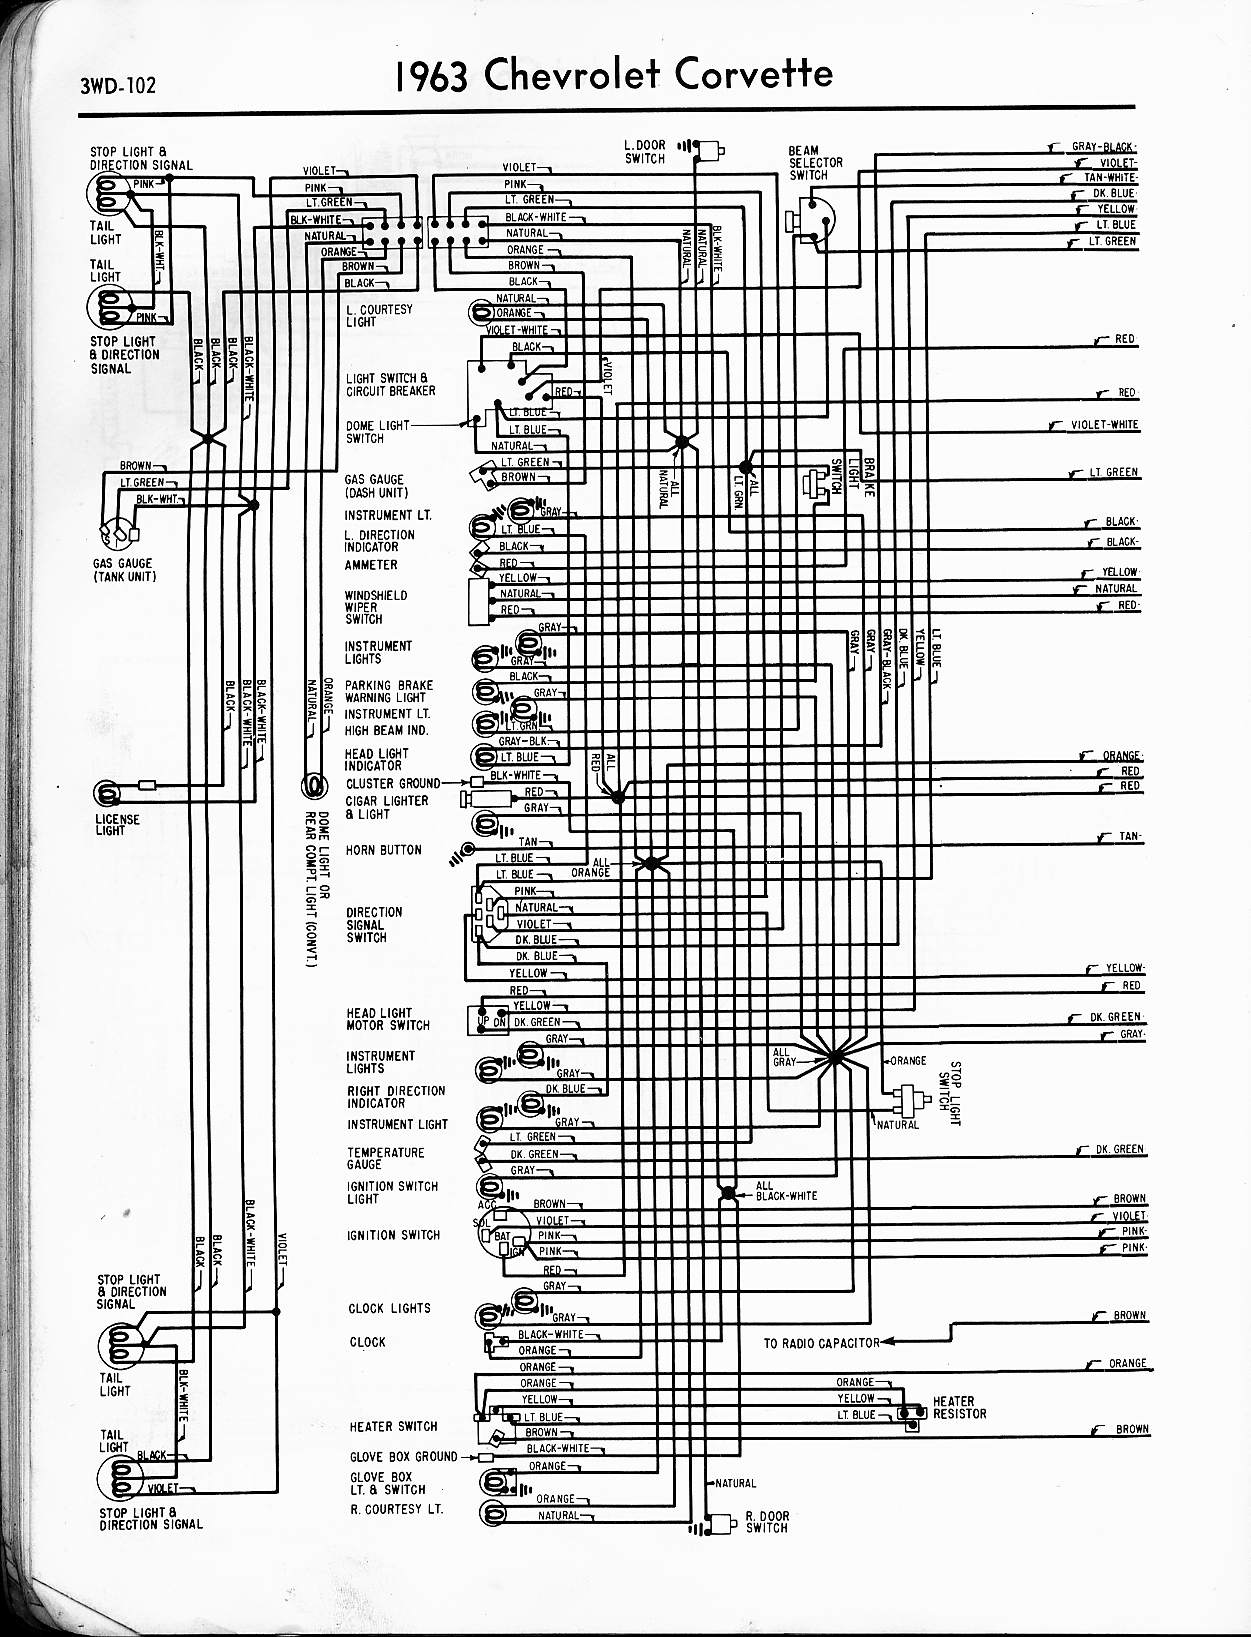 MWireChev63_3WD 102 57 65 chevy wiring diagrams 66 Corvette at cita.asia